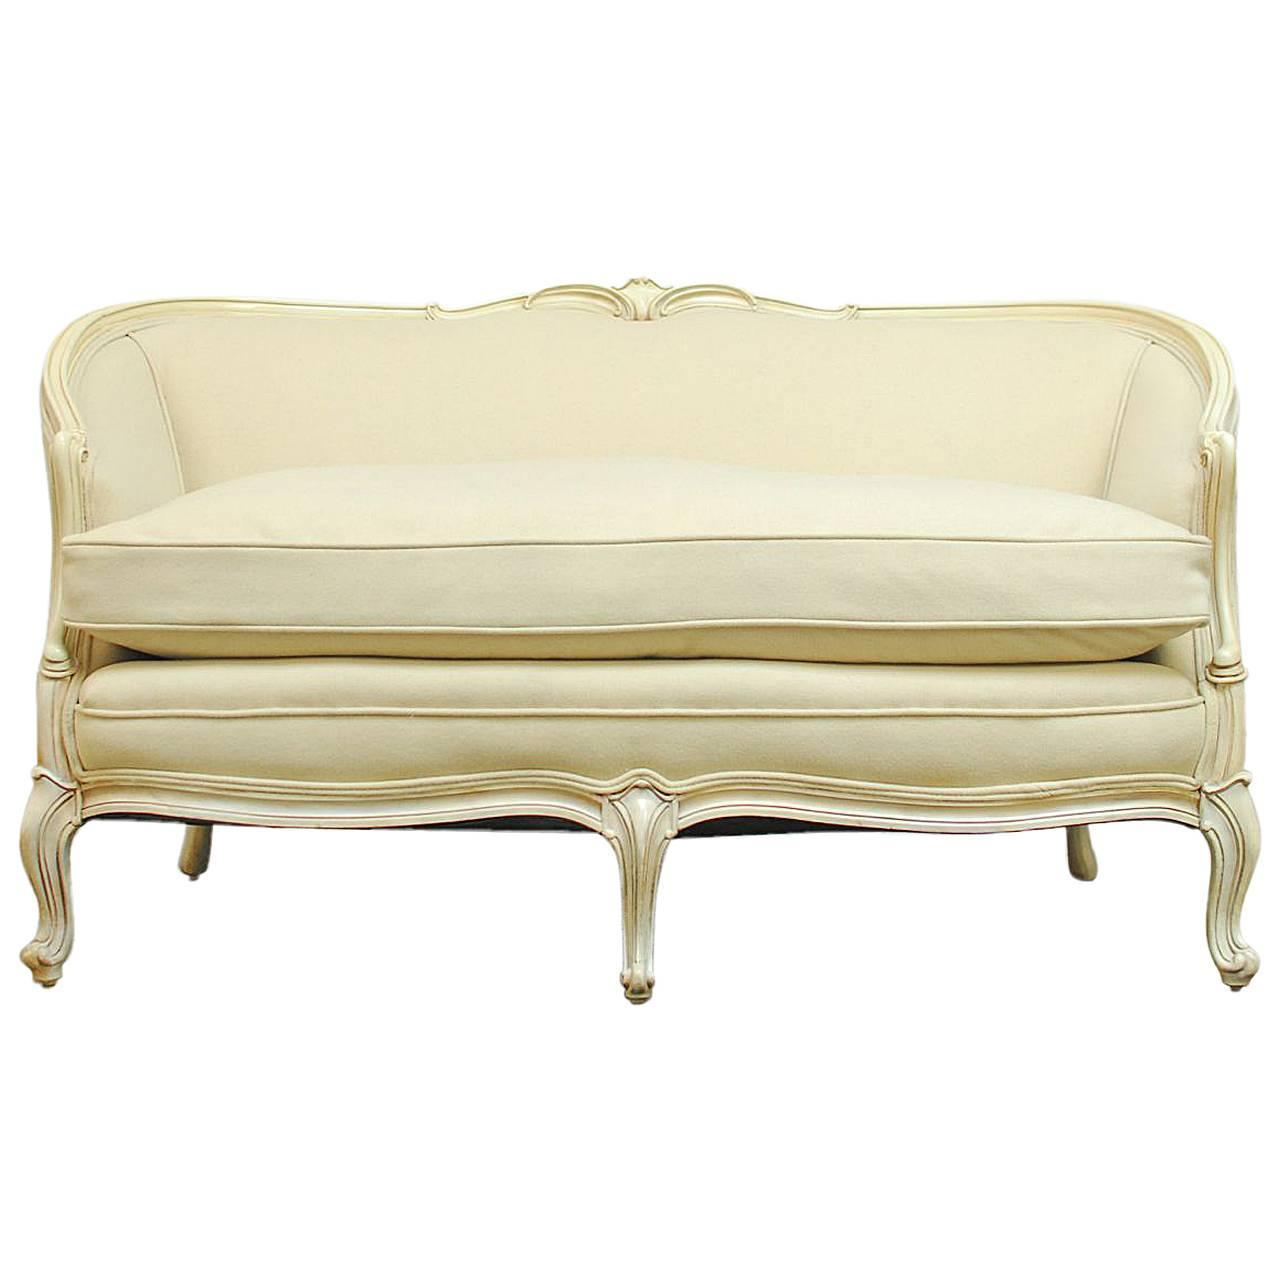 French Louis Xv Style Loveseat Settee At 1stdibs